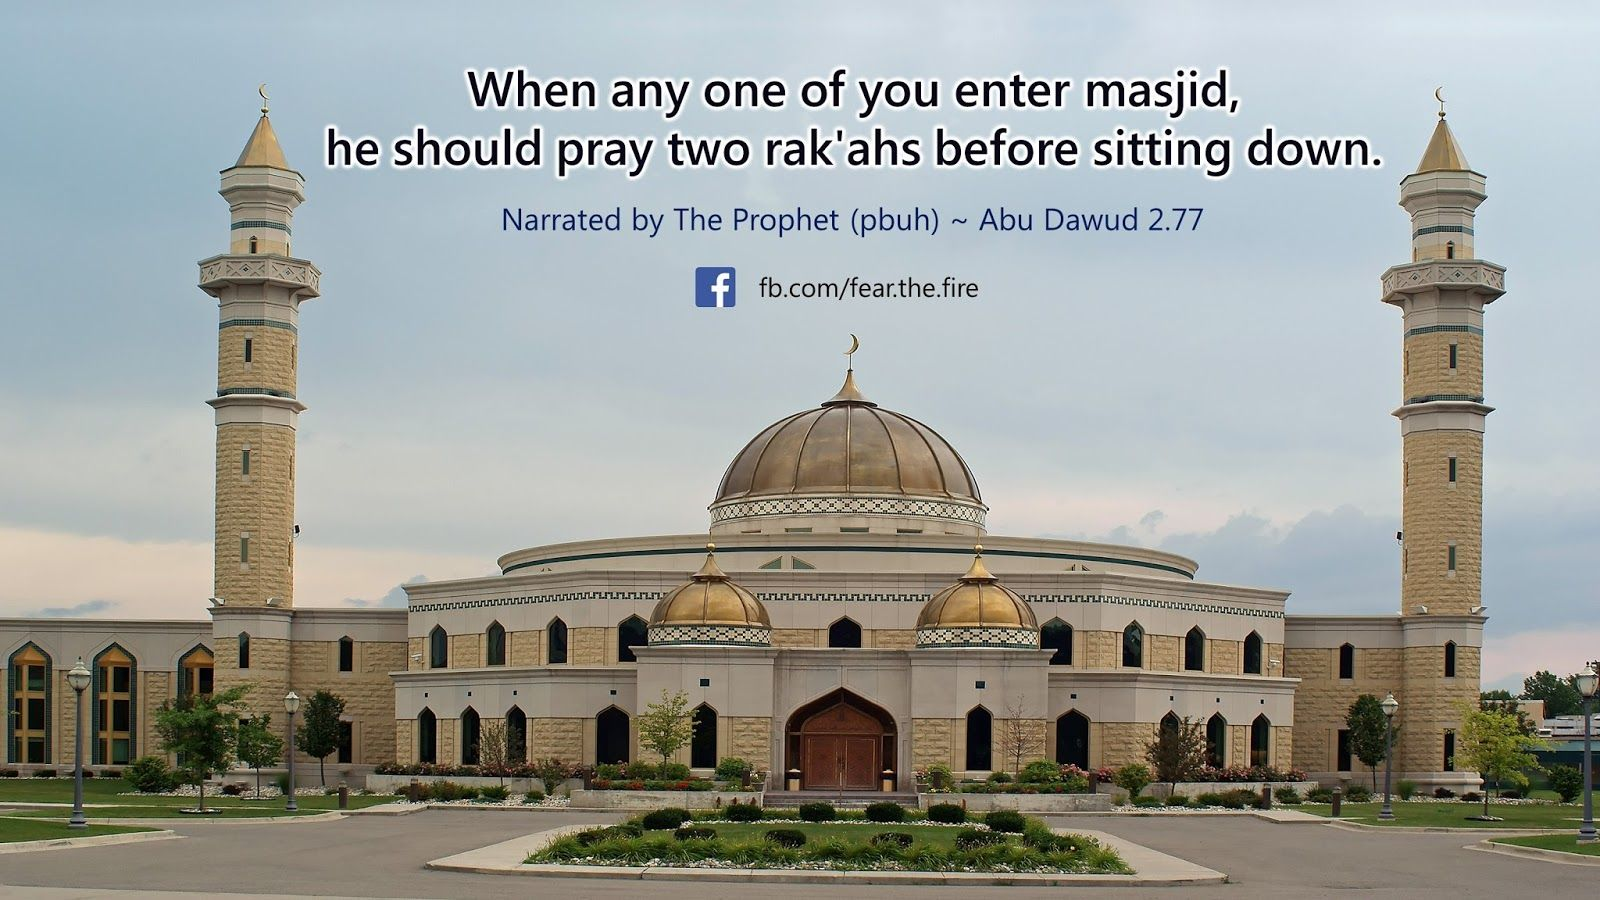 It is a preferred Sunnah of the Messenger of Allah (PBUH) to pray two rakahs whenever one enters a mosque.